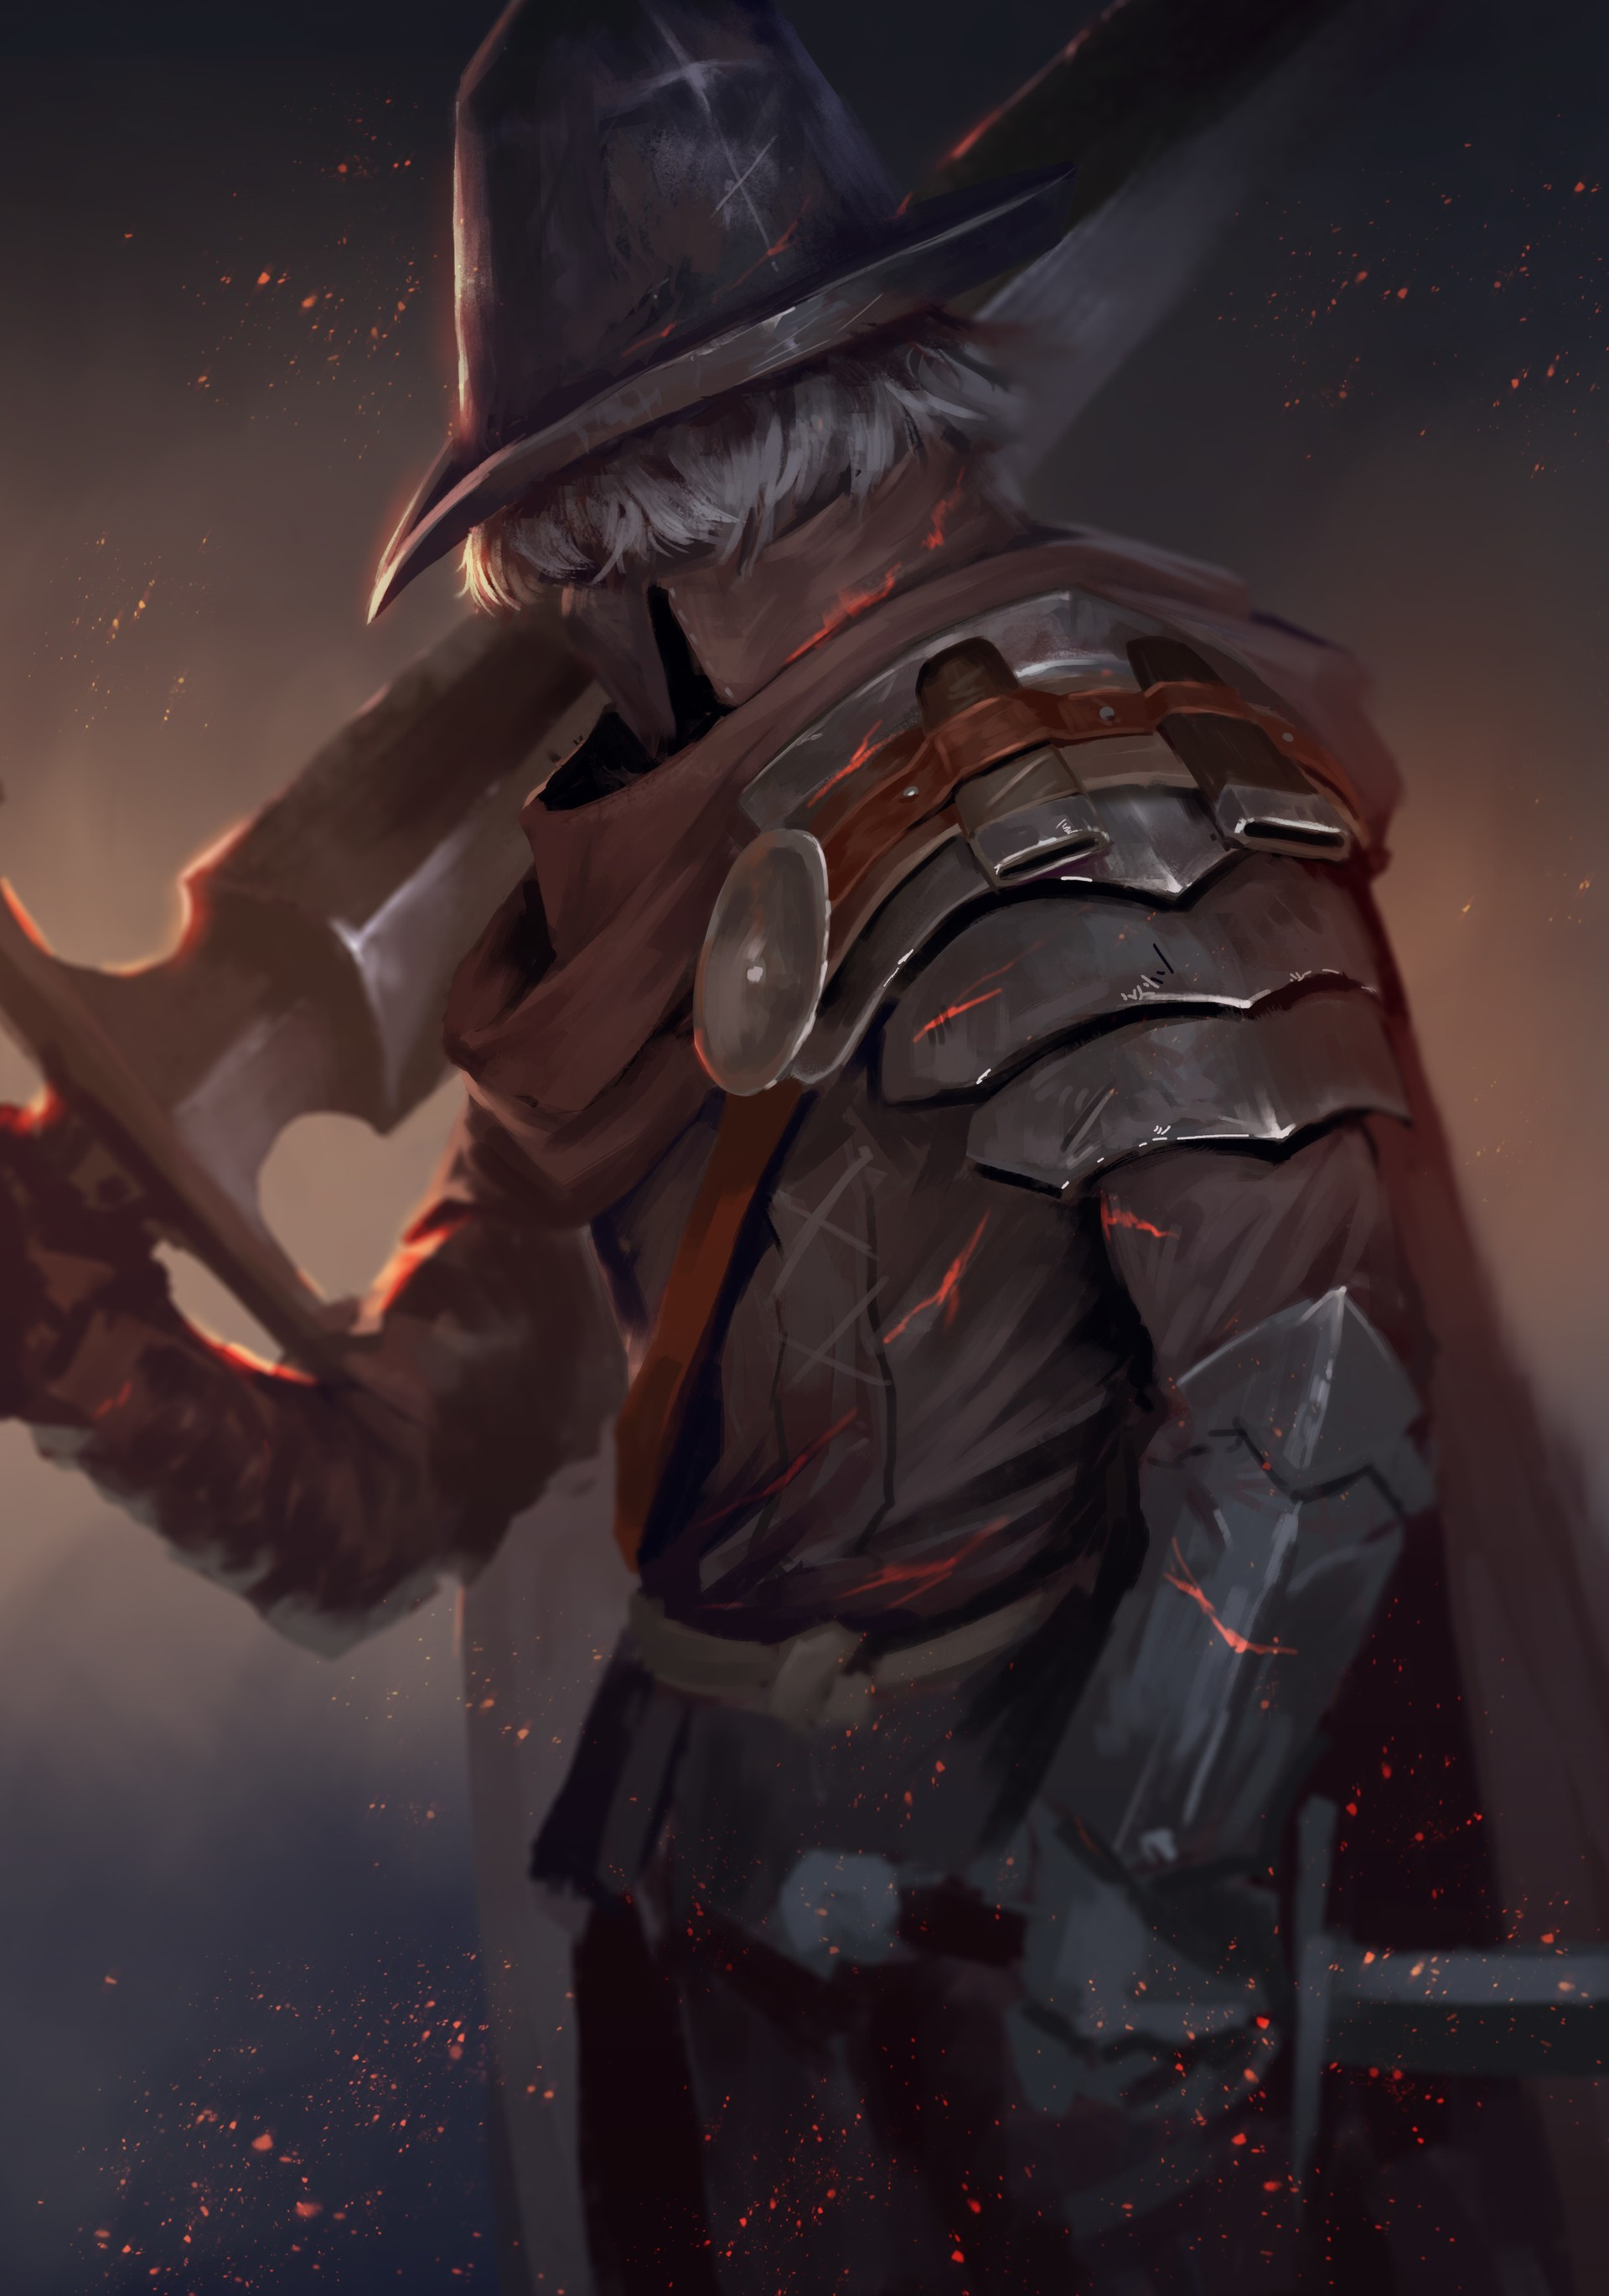 75 Abyss Watchers Android Iphone Desktop Hd Backgrounds Wallpapers 1080p 4k 1920x2739 2020